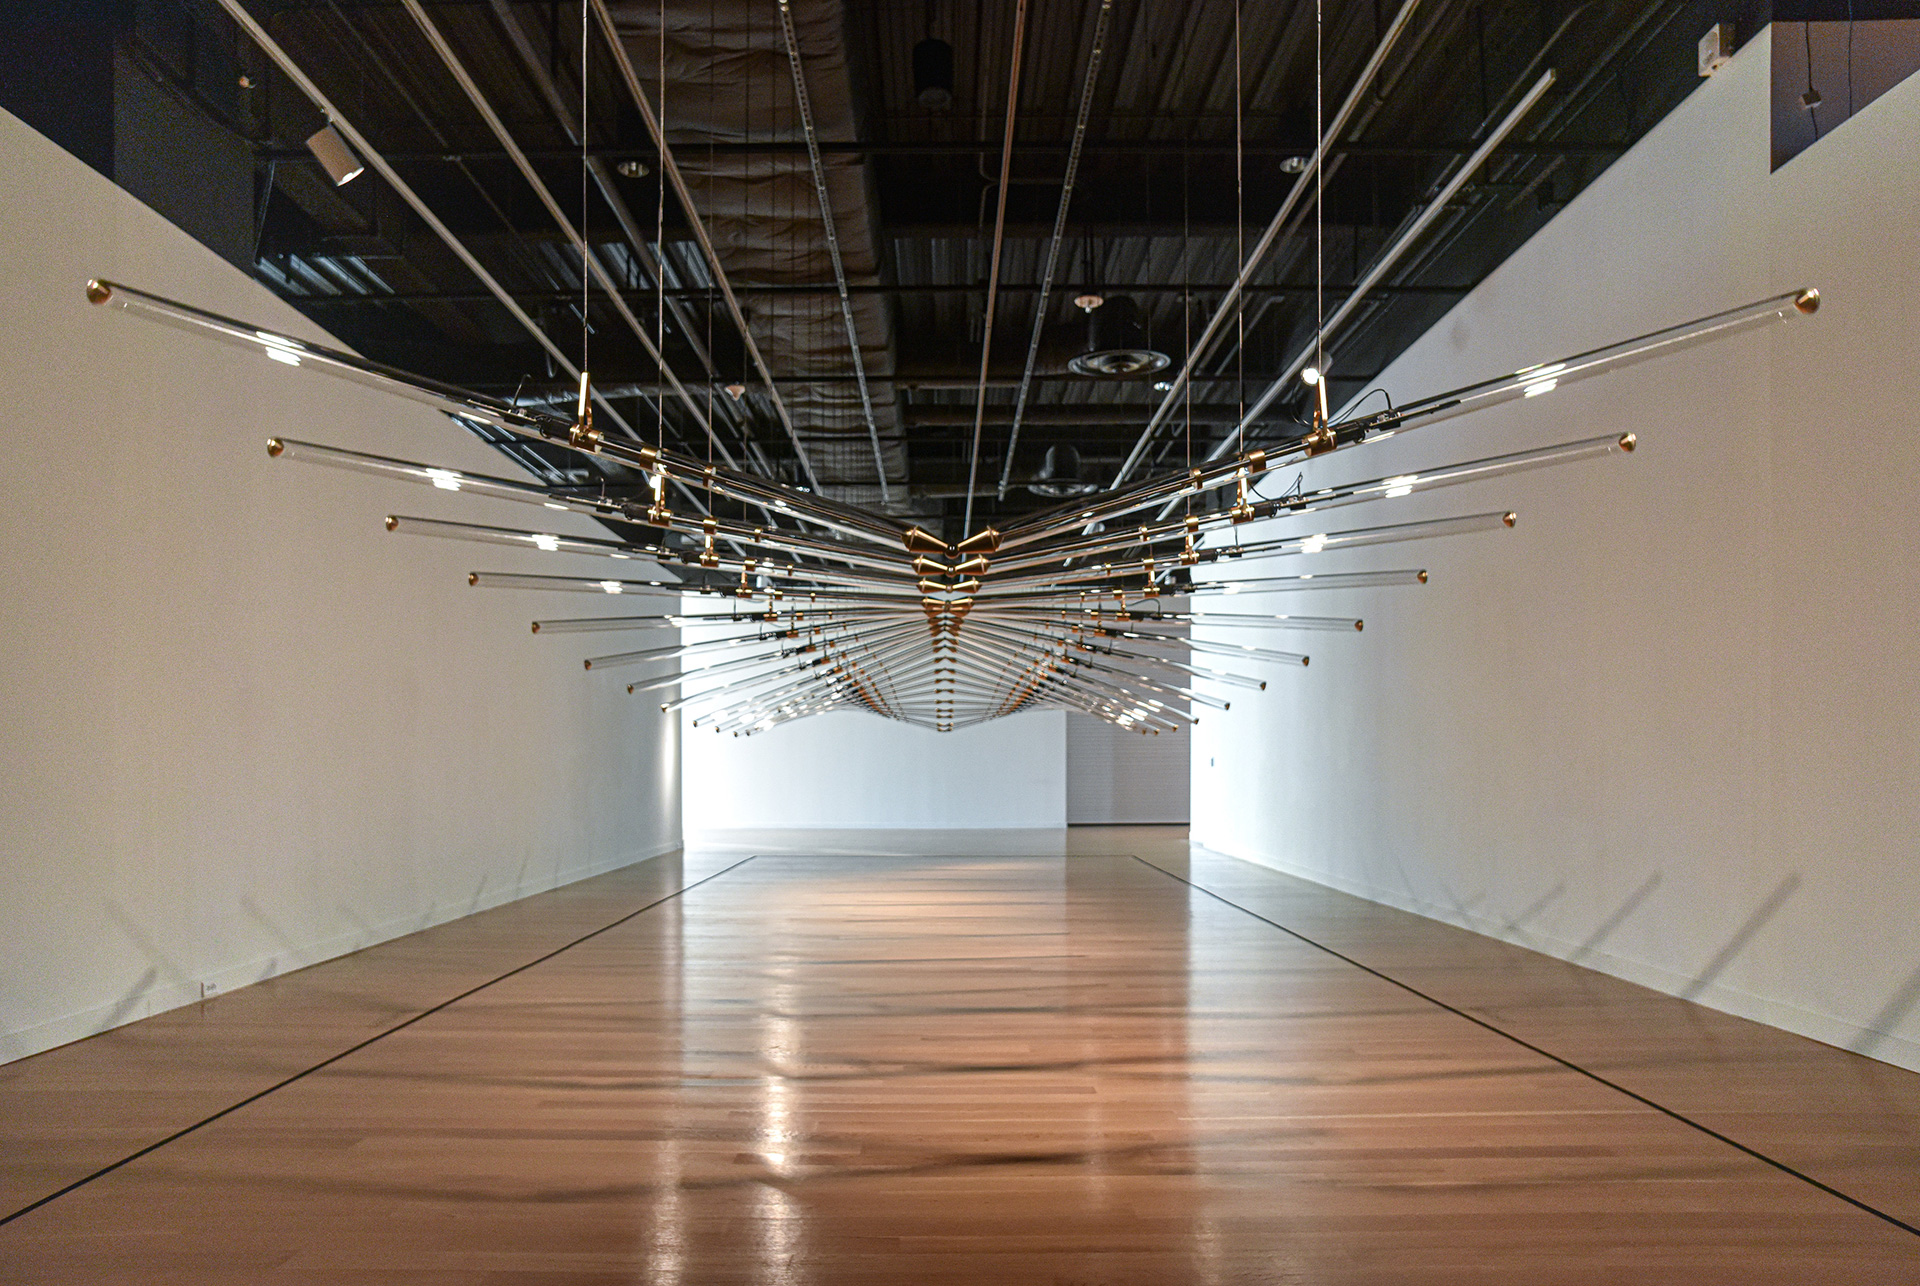 Studio Drift. Amplitude, 2017, installation at the Mint Museum, Charlotte, North Carolina | Immersed in Light | Studio Drift | The Mint Museum | STIRworld